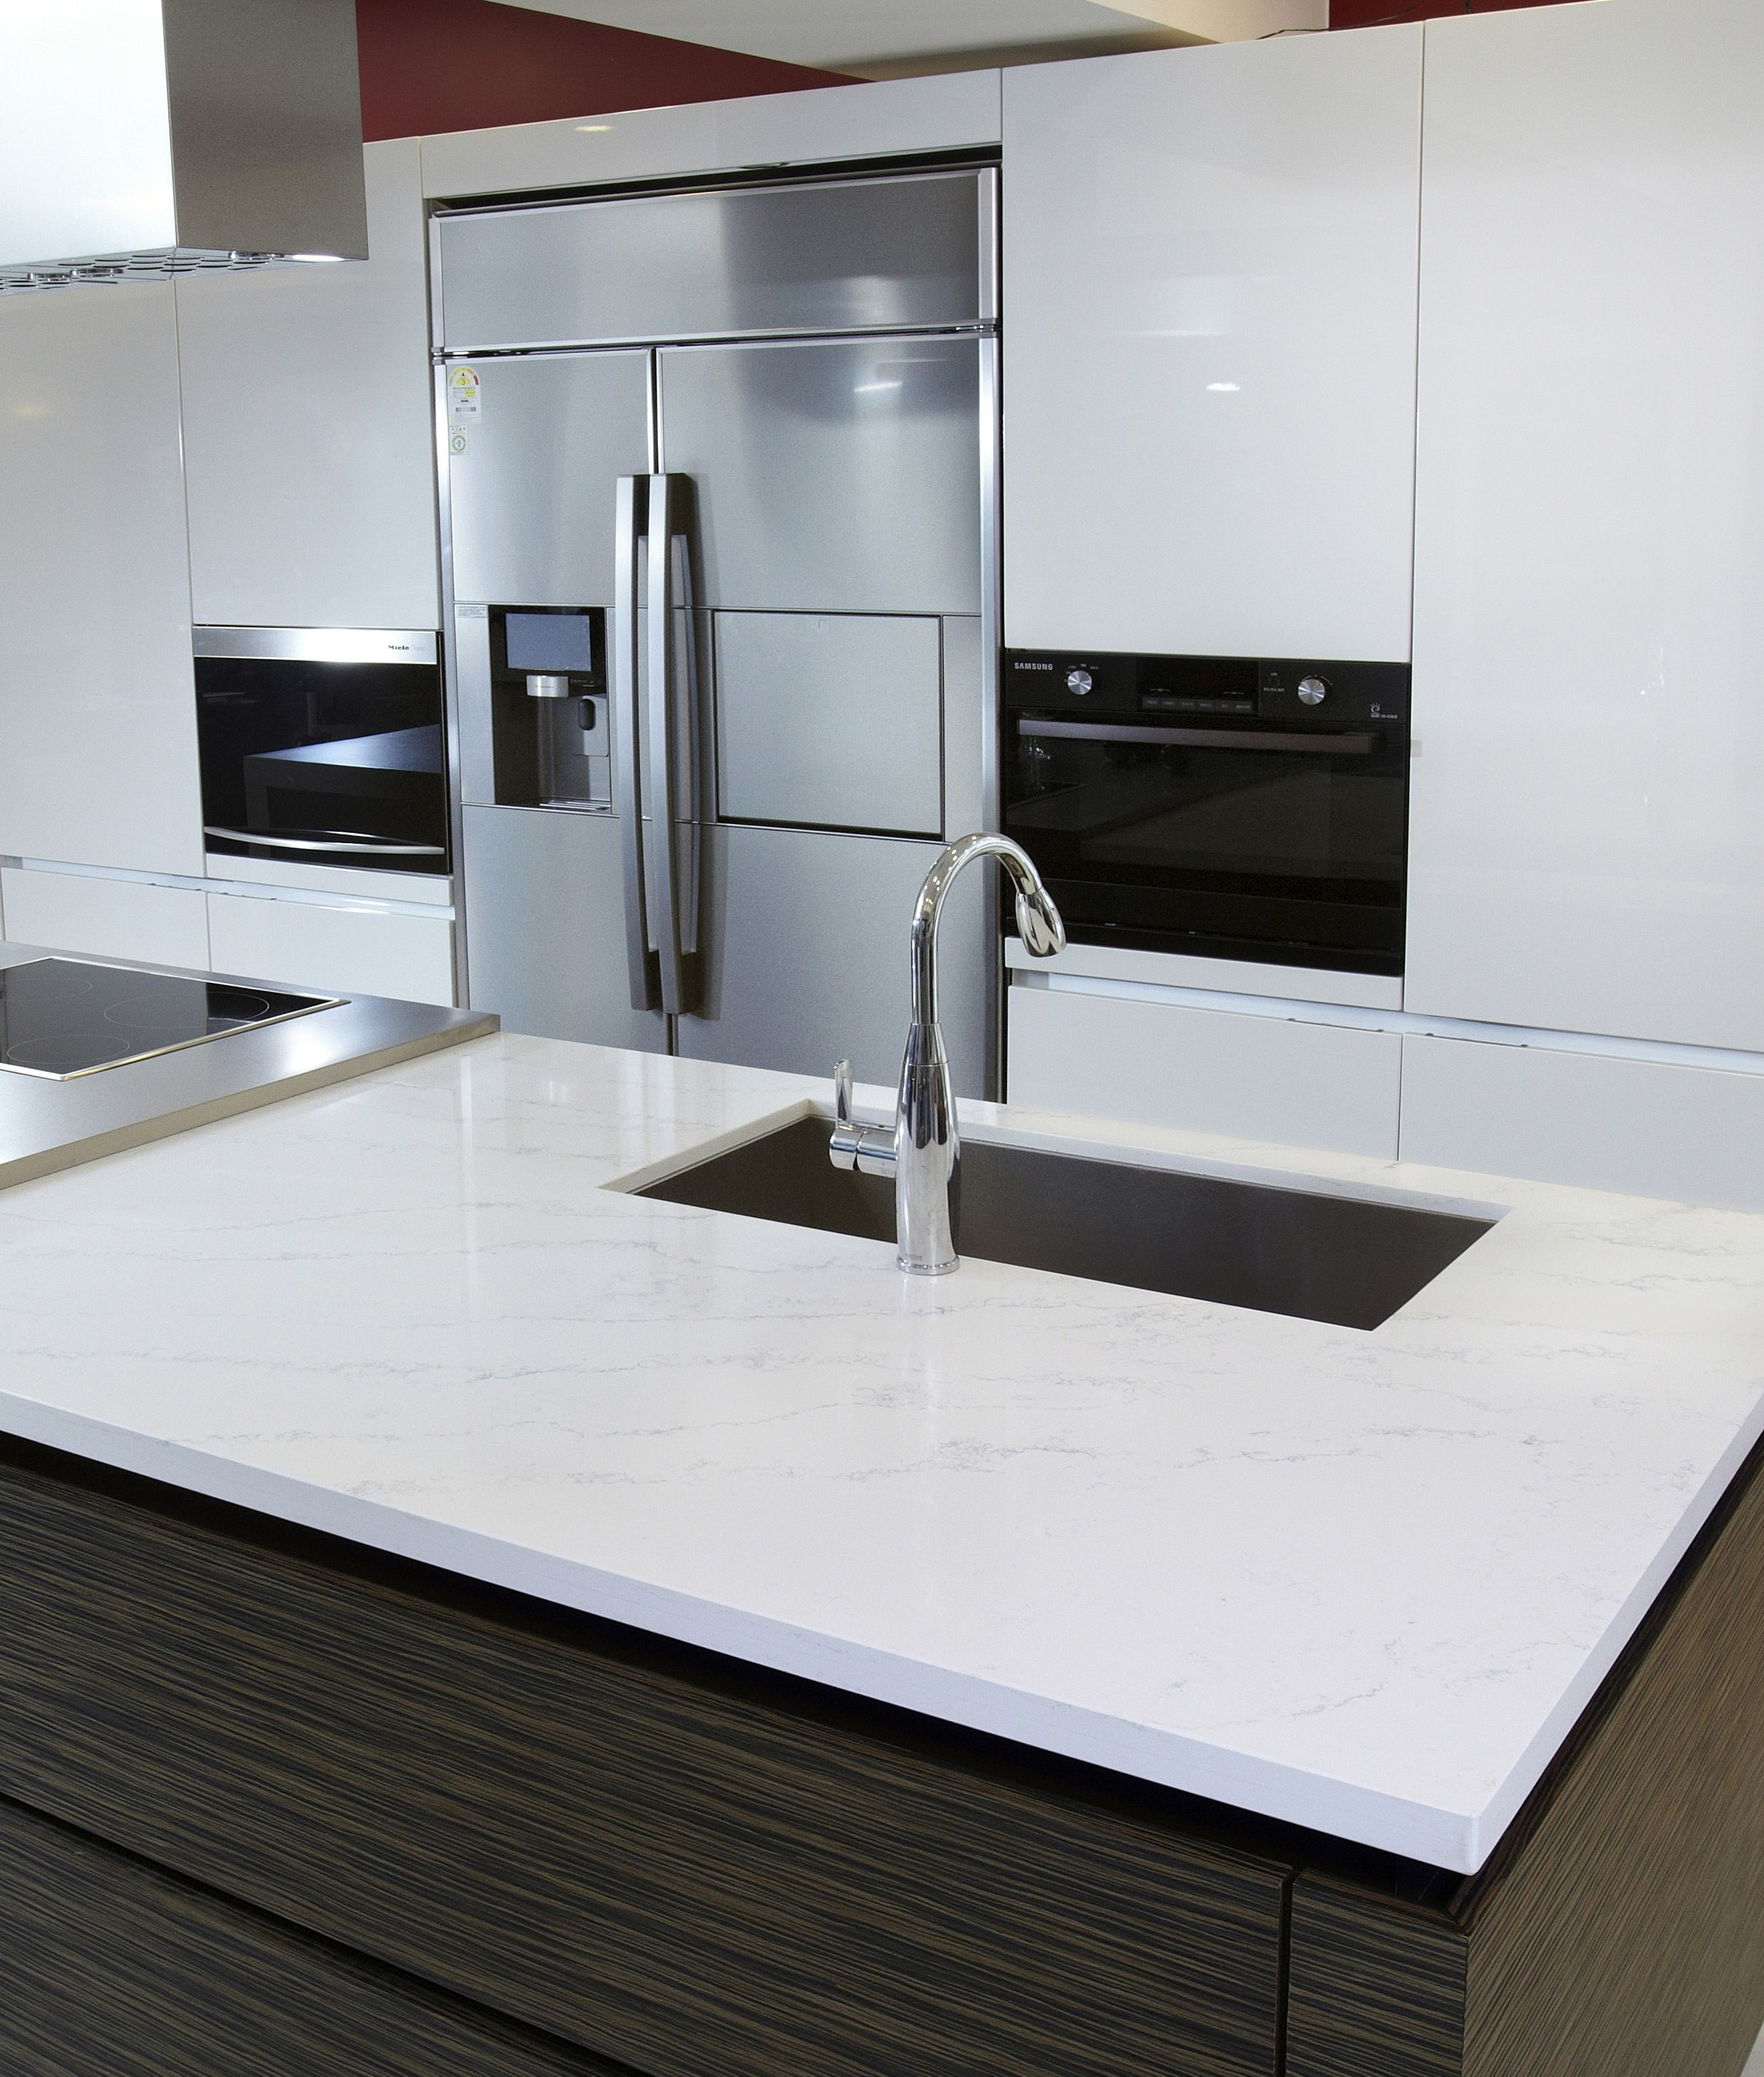 Charming Countertops Ordered: Hanstone Tranquility. Two New Fabulous Colors From HanStone  Quartz